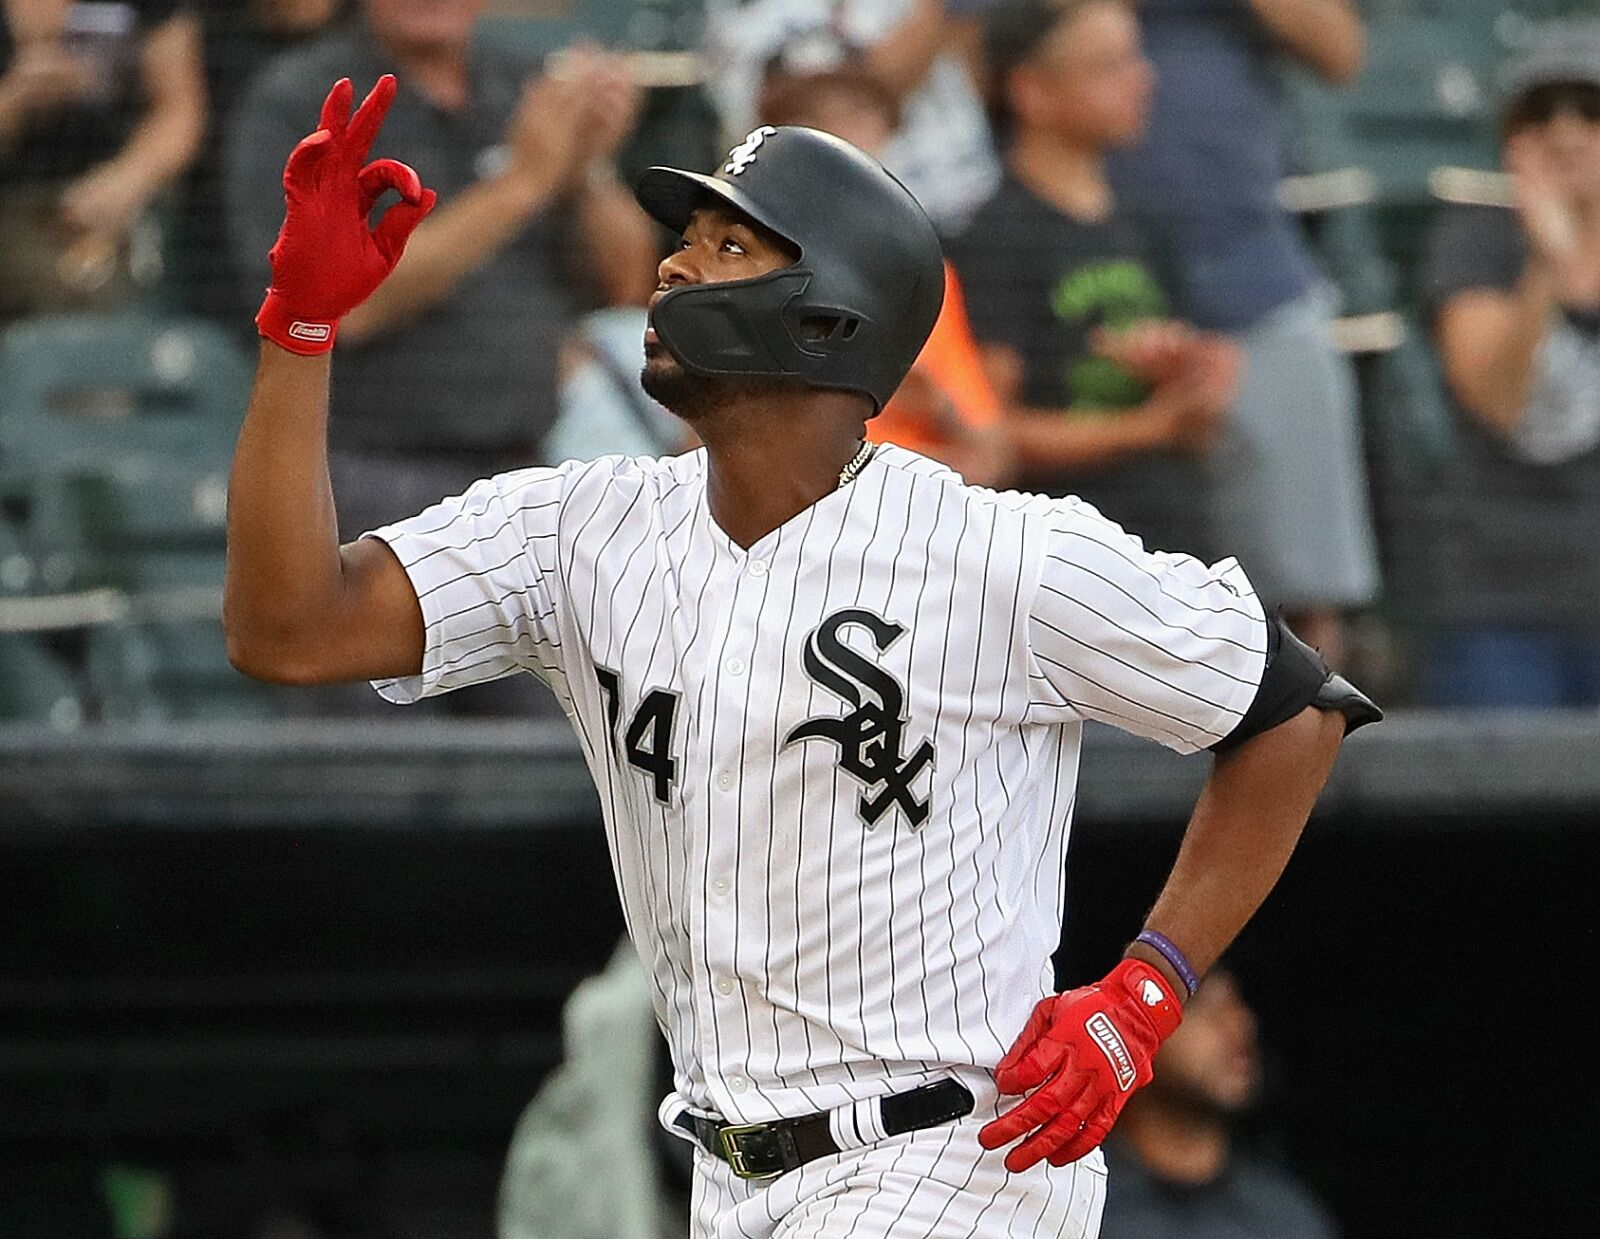 MLBPA nominates two Chicago White Sox players for awards